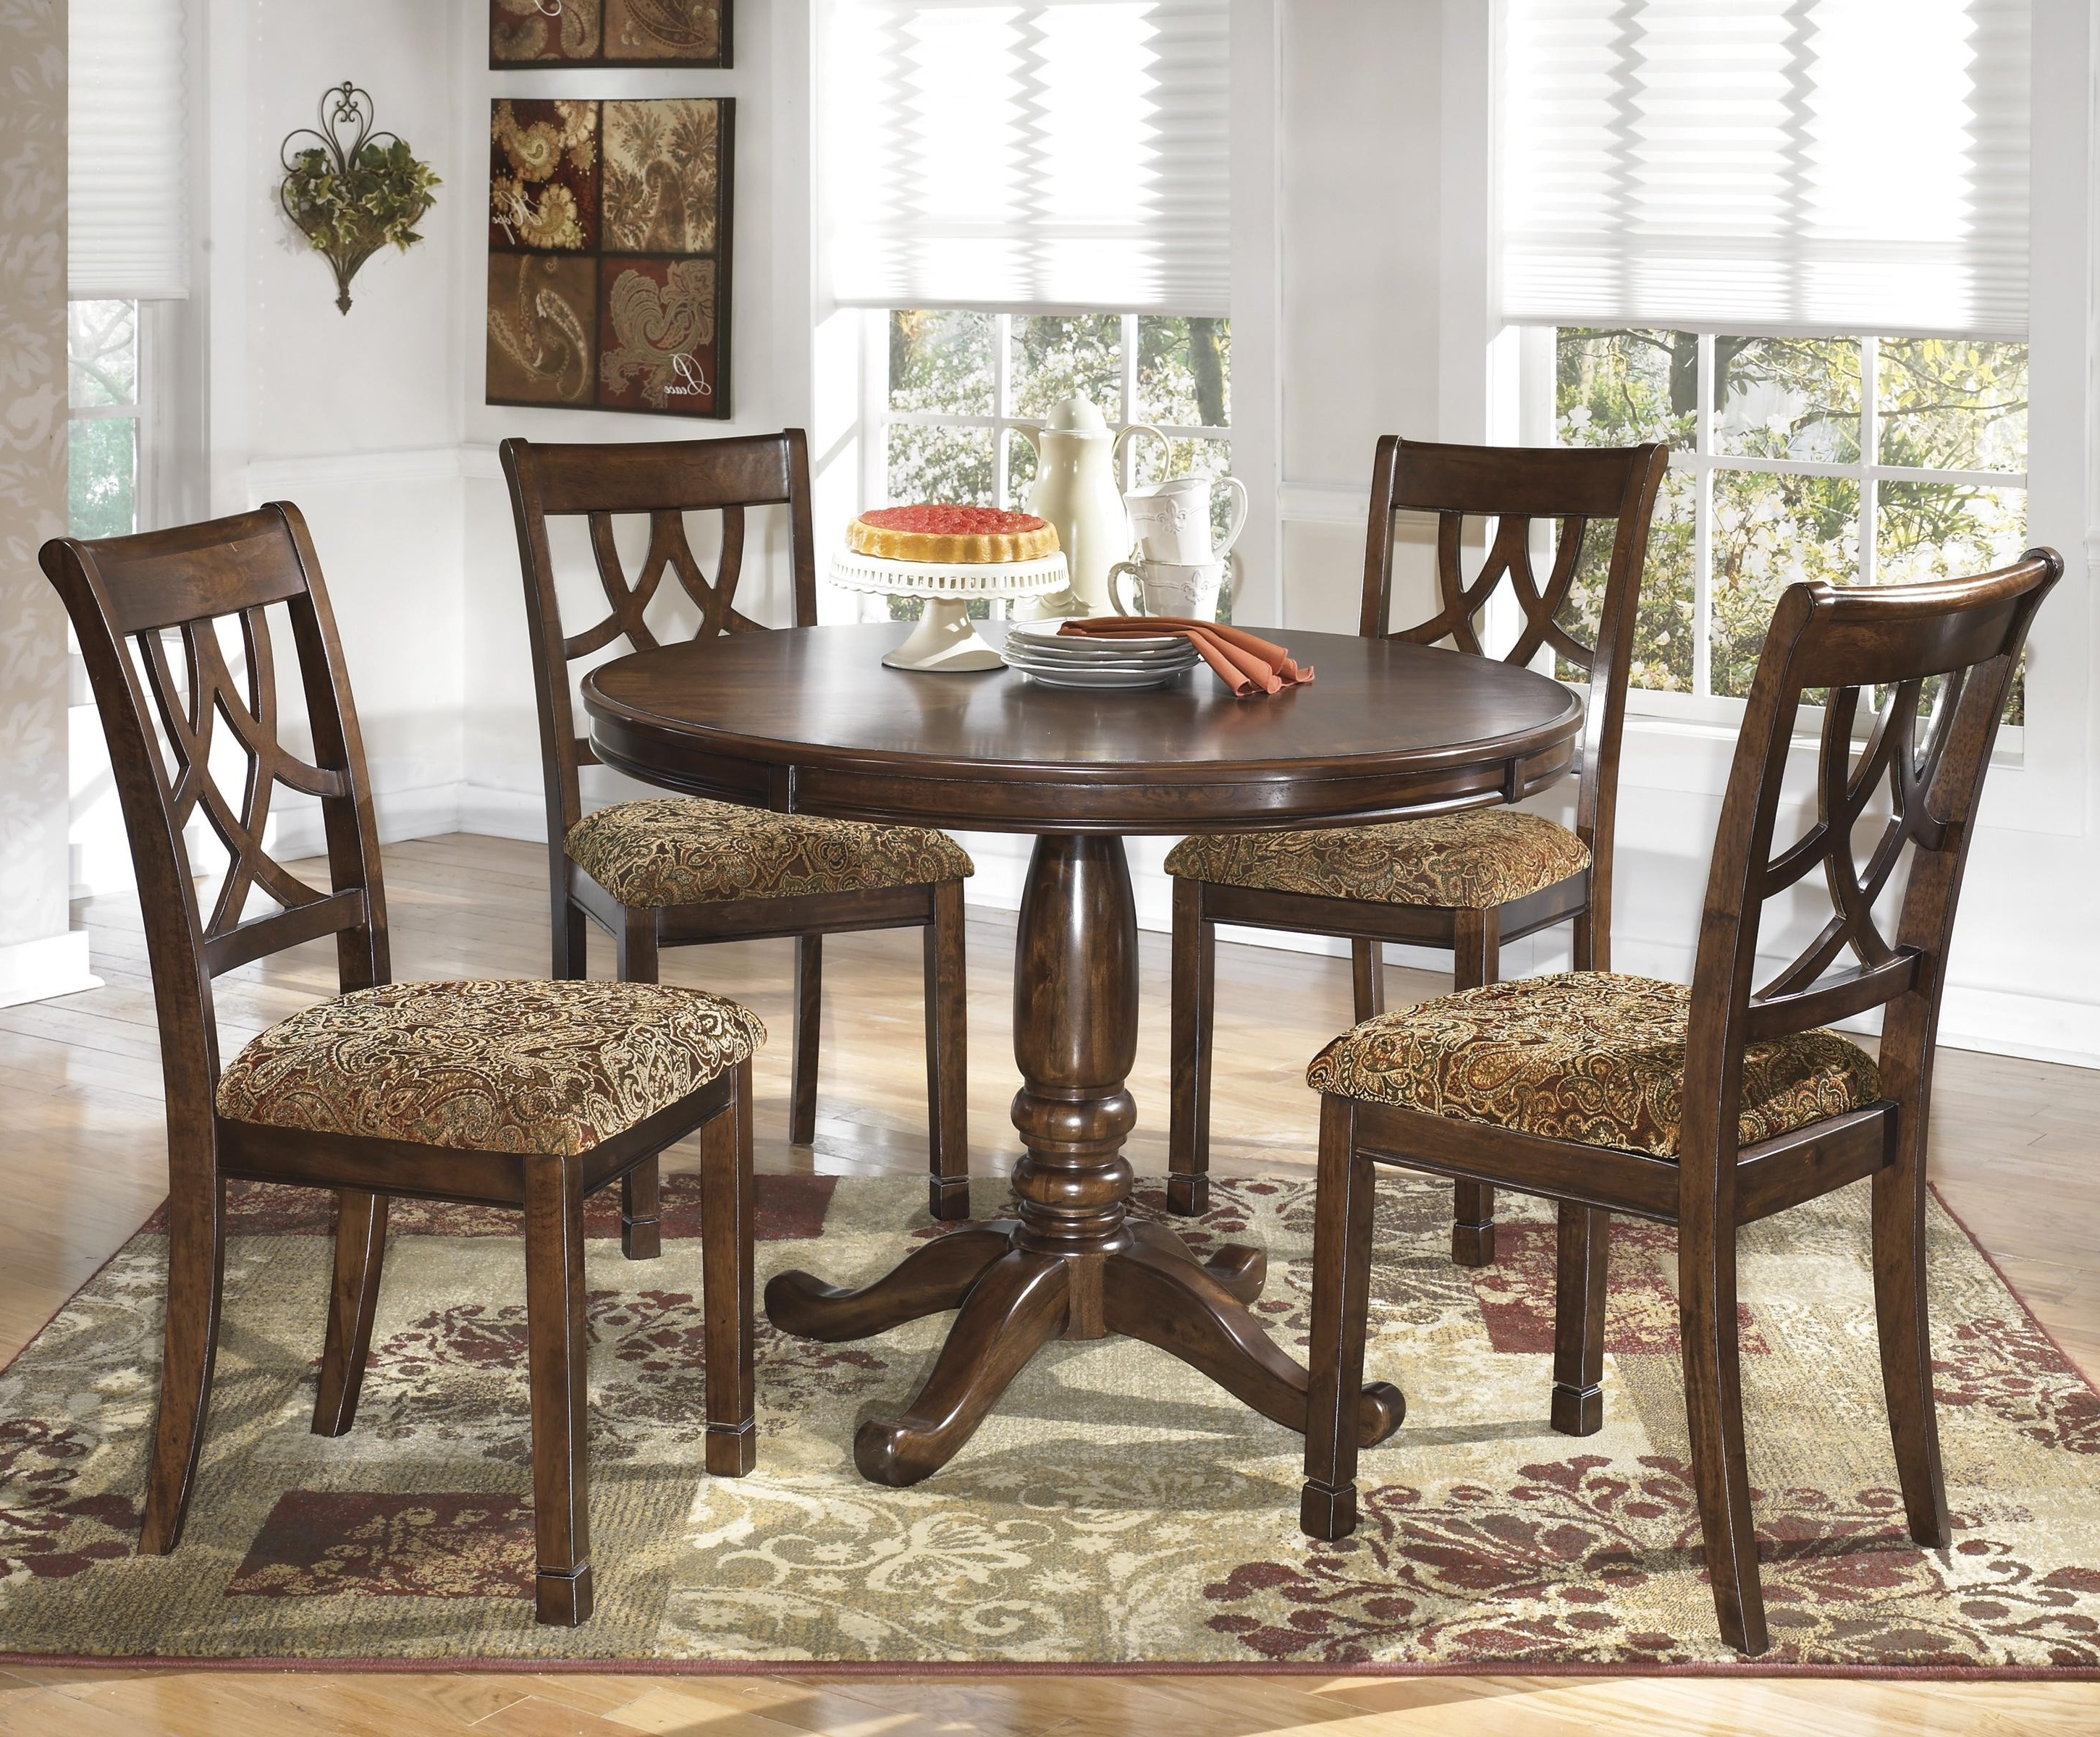 Ashton Round Pedestal Dining Table Elegant Kitchen Dining Area Intended For Well Liked Jaxon Grey 5 Piece Round Extension Dining Sets With Upholstered Chairs (Gallery 18 of 25)